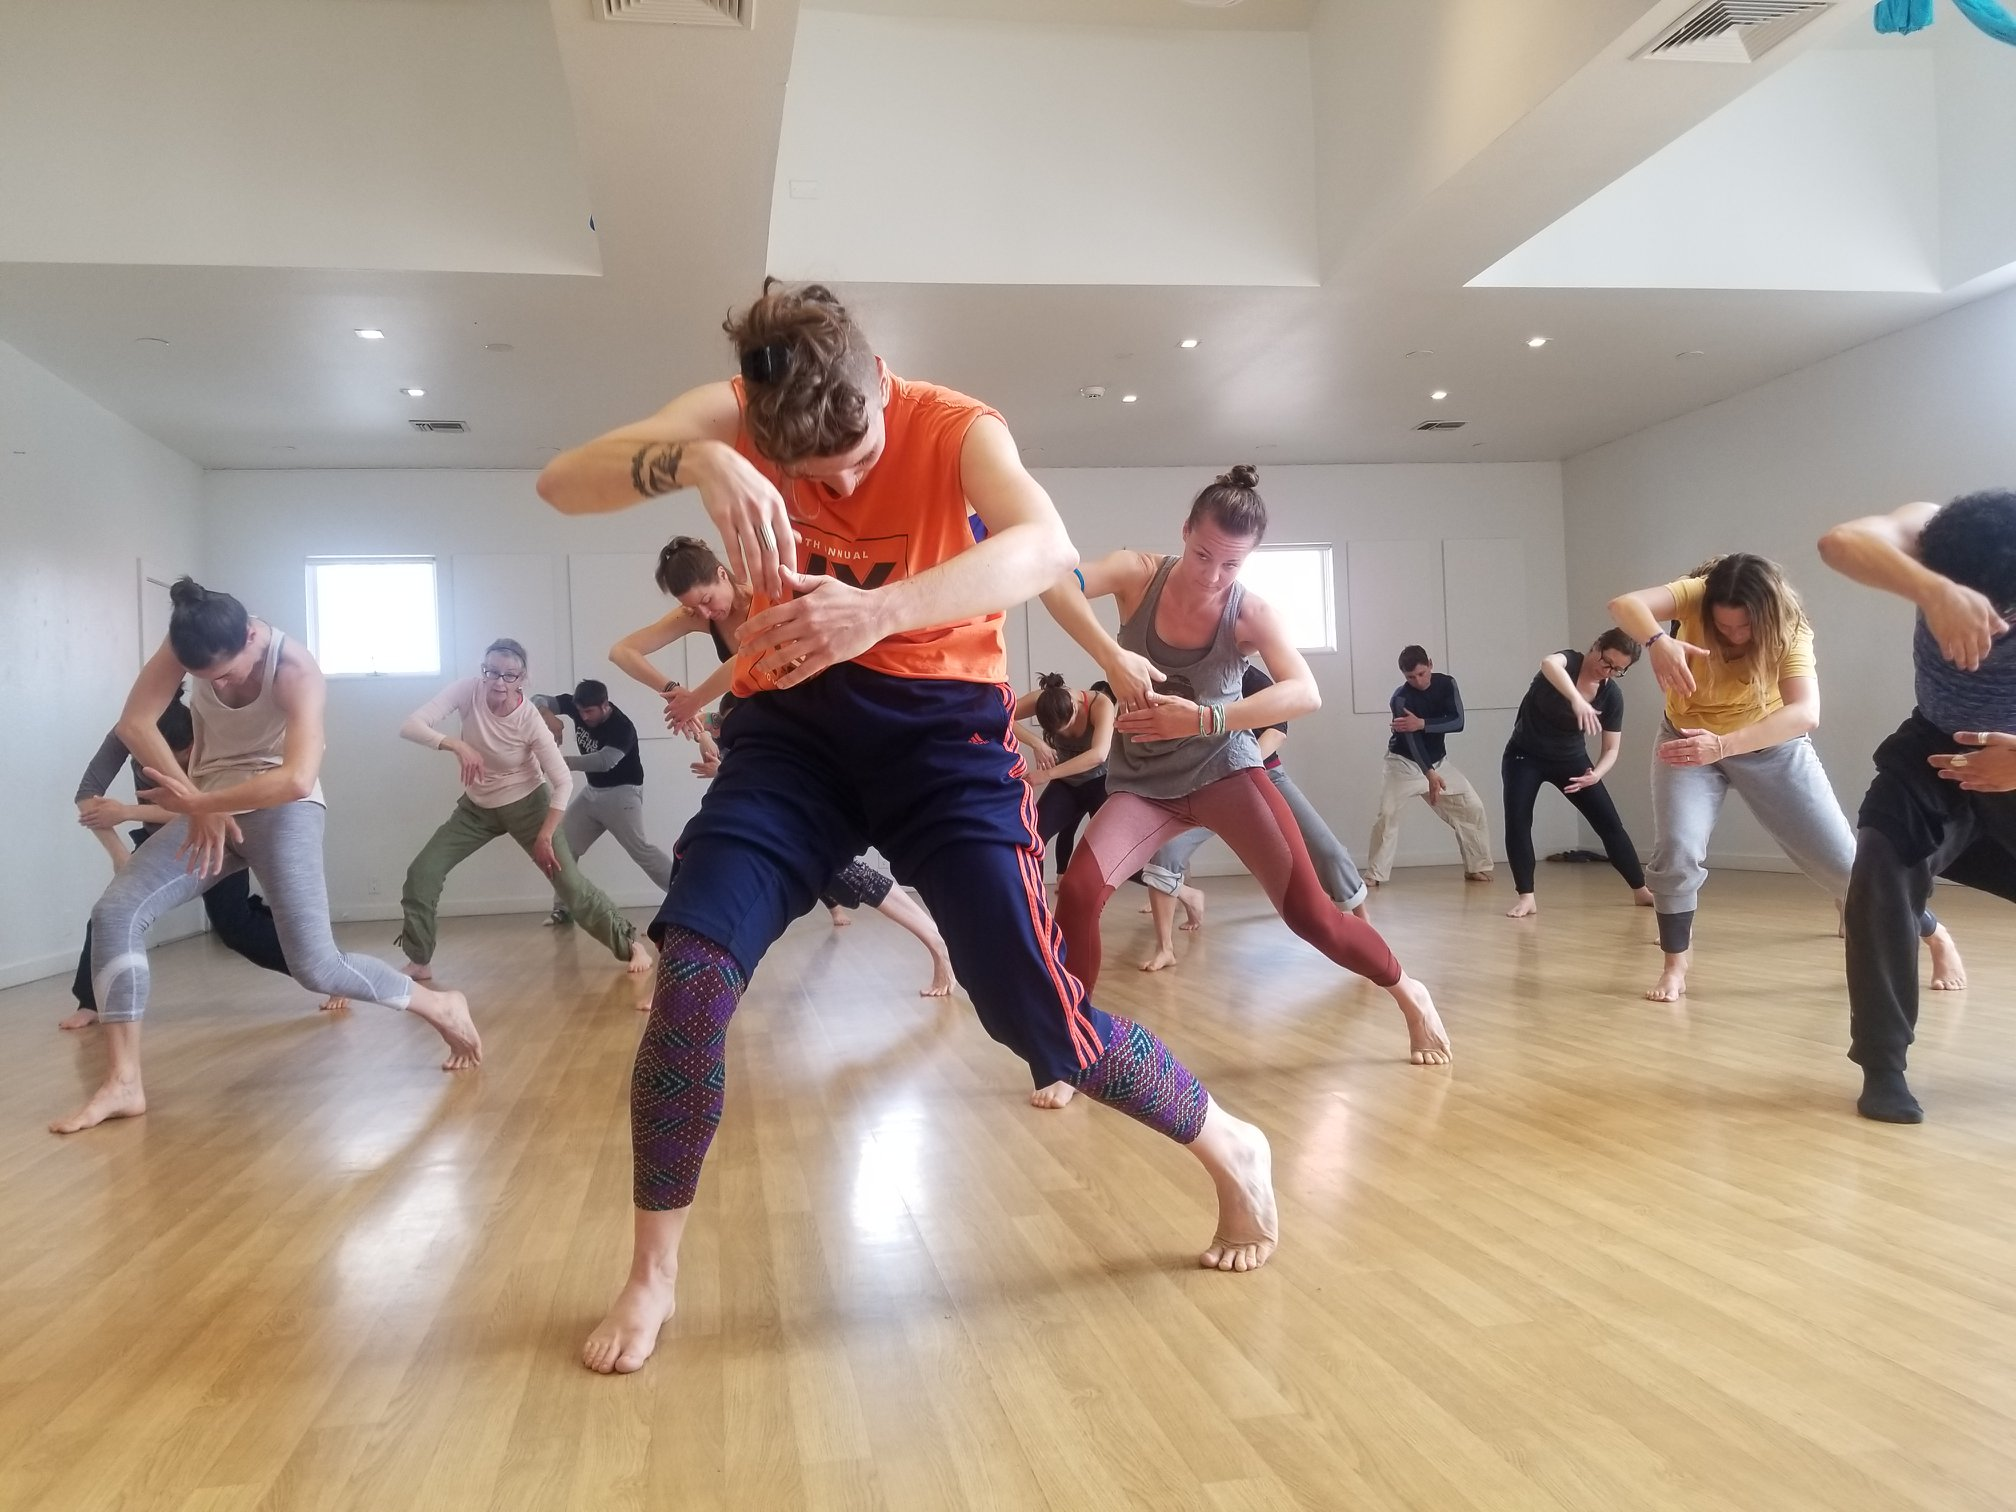 Woman standing in front of large group behind her leading a movement threading her right hand through a space that her left hand has created. The left hand is moving down and this picture captures the moment it is about to meet the right hand, which is extended in front of her chest. The students behind her are mimicking the movement. The teachers is dressed in a bright orange shirt and navy blue exercsie pants with orange pants down the side. Her legs are spread apart and bent with the left heel cocked off the floor; her body is in a slight contraction forward and her focus is down.